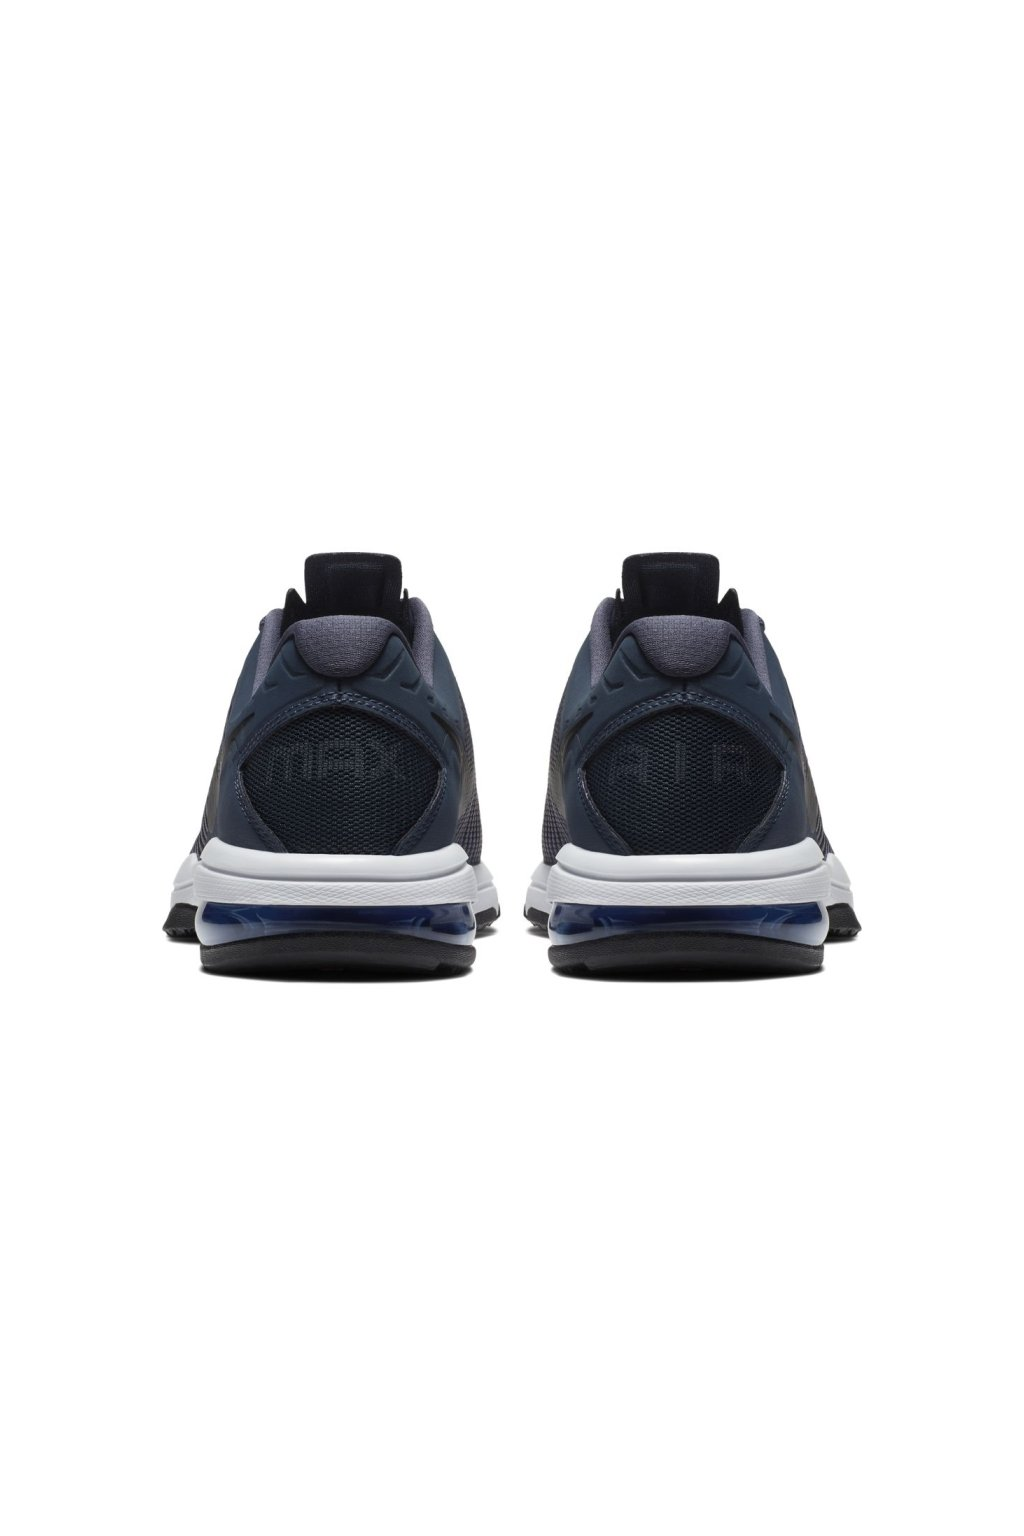 NIKE AIR MAX FULL RIDE TR 1.5 869633-406 - Fresh sport 7e7327419a3